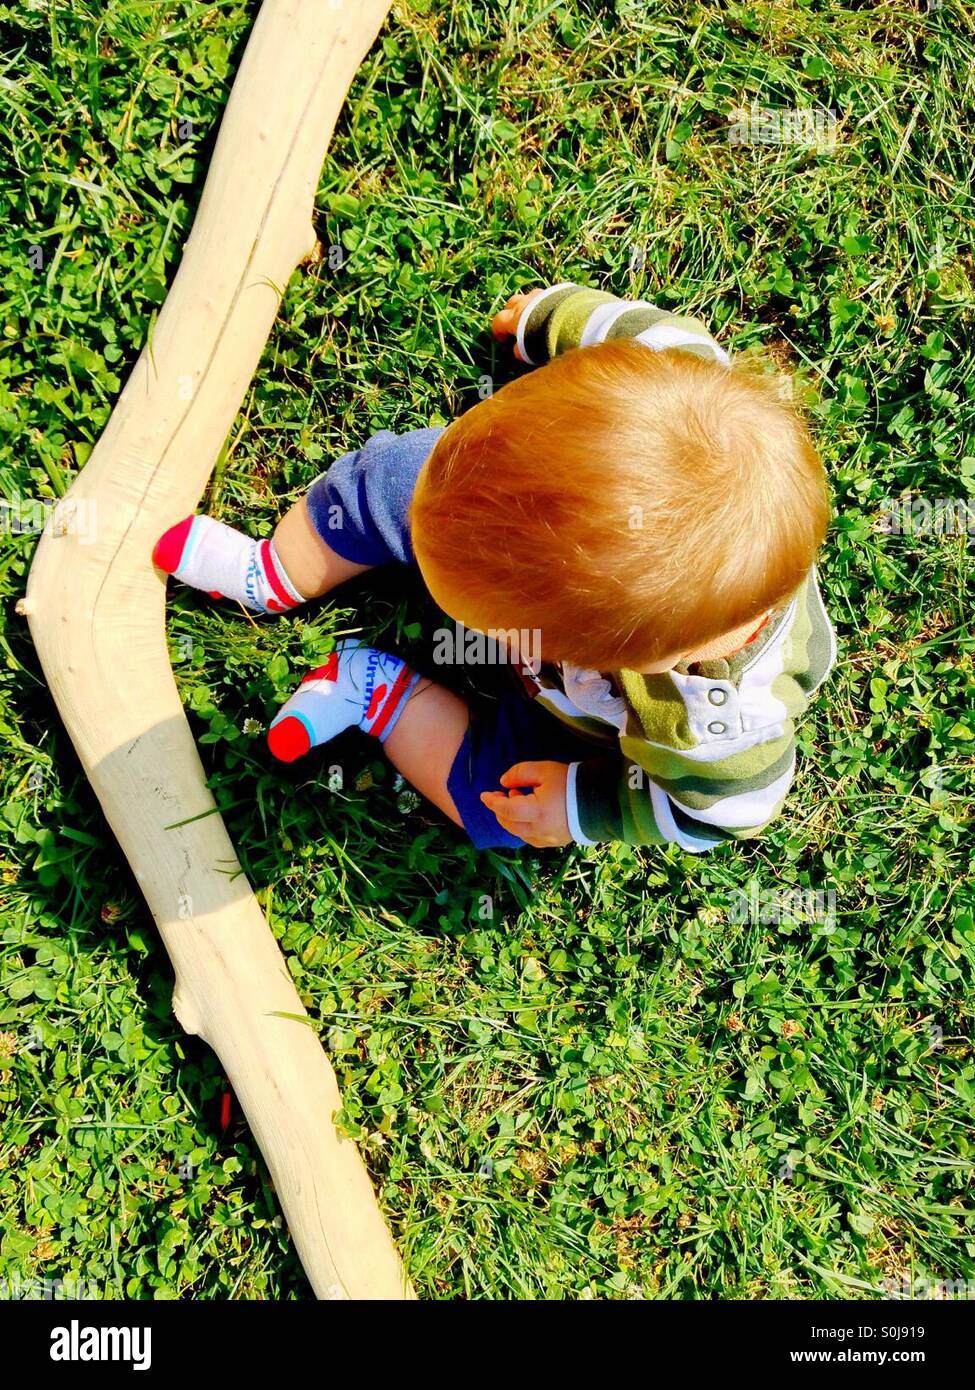 Redhead baby boy sitting on a green grass with a piece of debarked wood - Stock Image